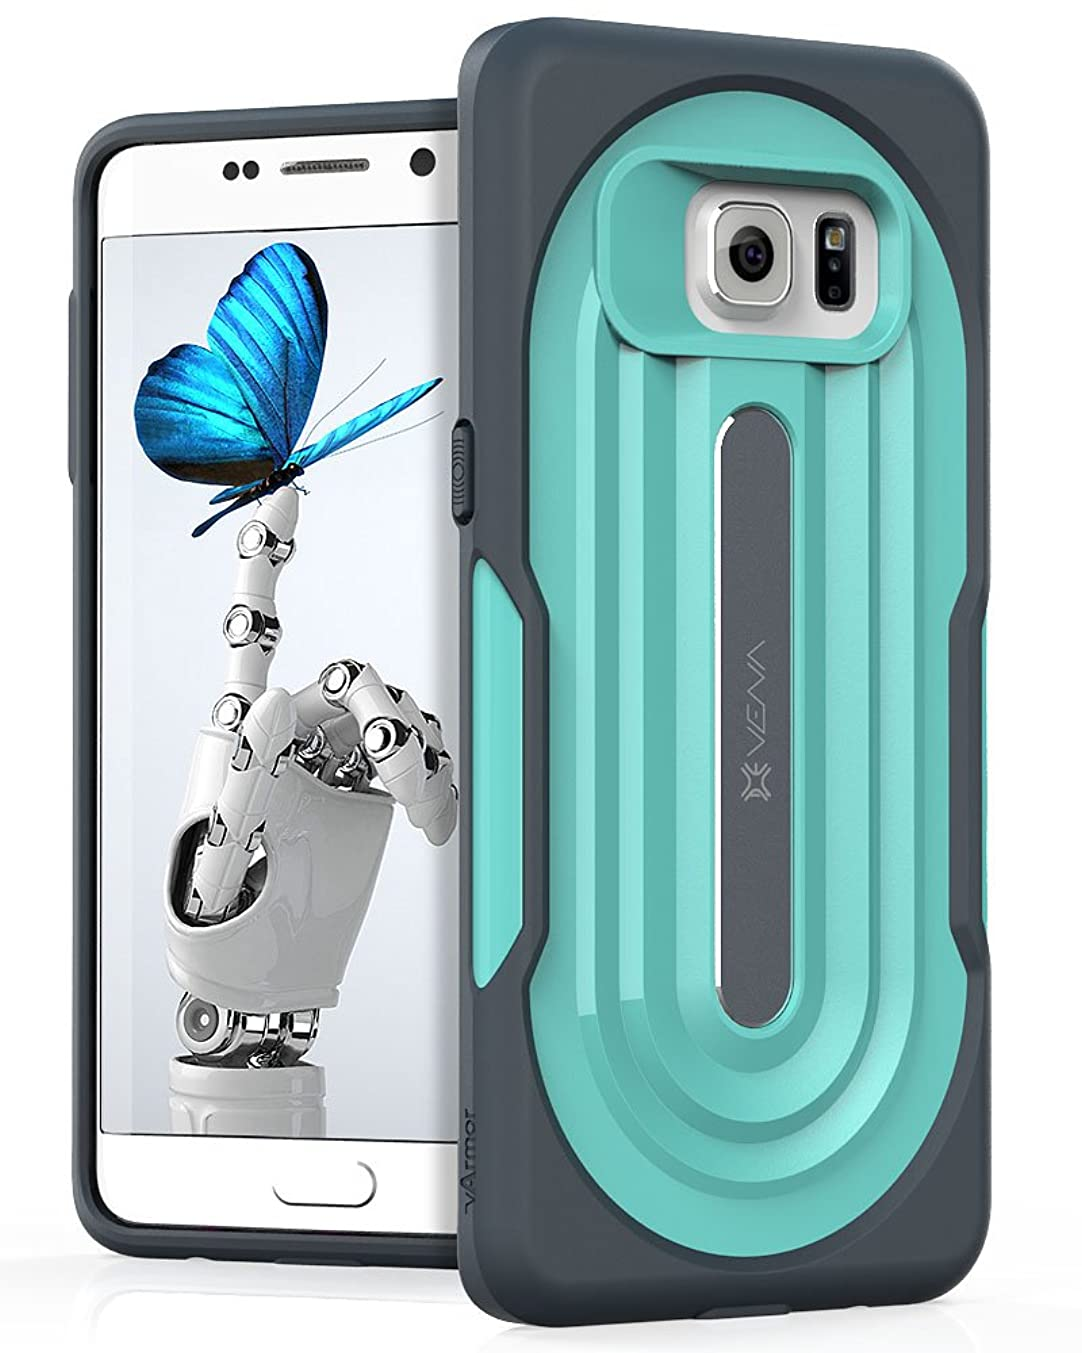 Galaxy S6 Edge Plus Rugged Case, VENA [vArmor] Ultimate Protection [Shock Absorbent | Heavy Duty] Slim Hybrid Rugged Case, for Samsung Galaxy S6 Edge Plus (Dark Gray/Turquoise Teal)